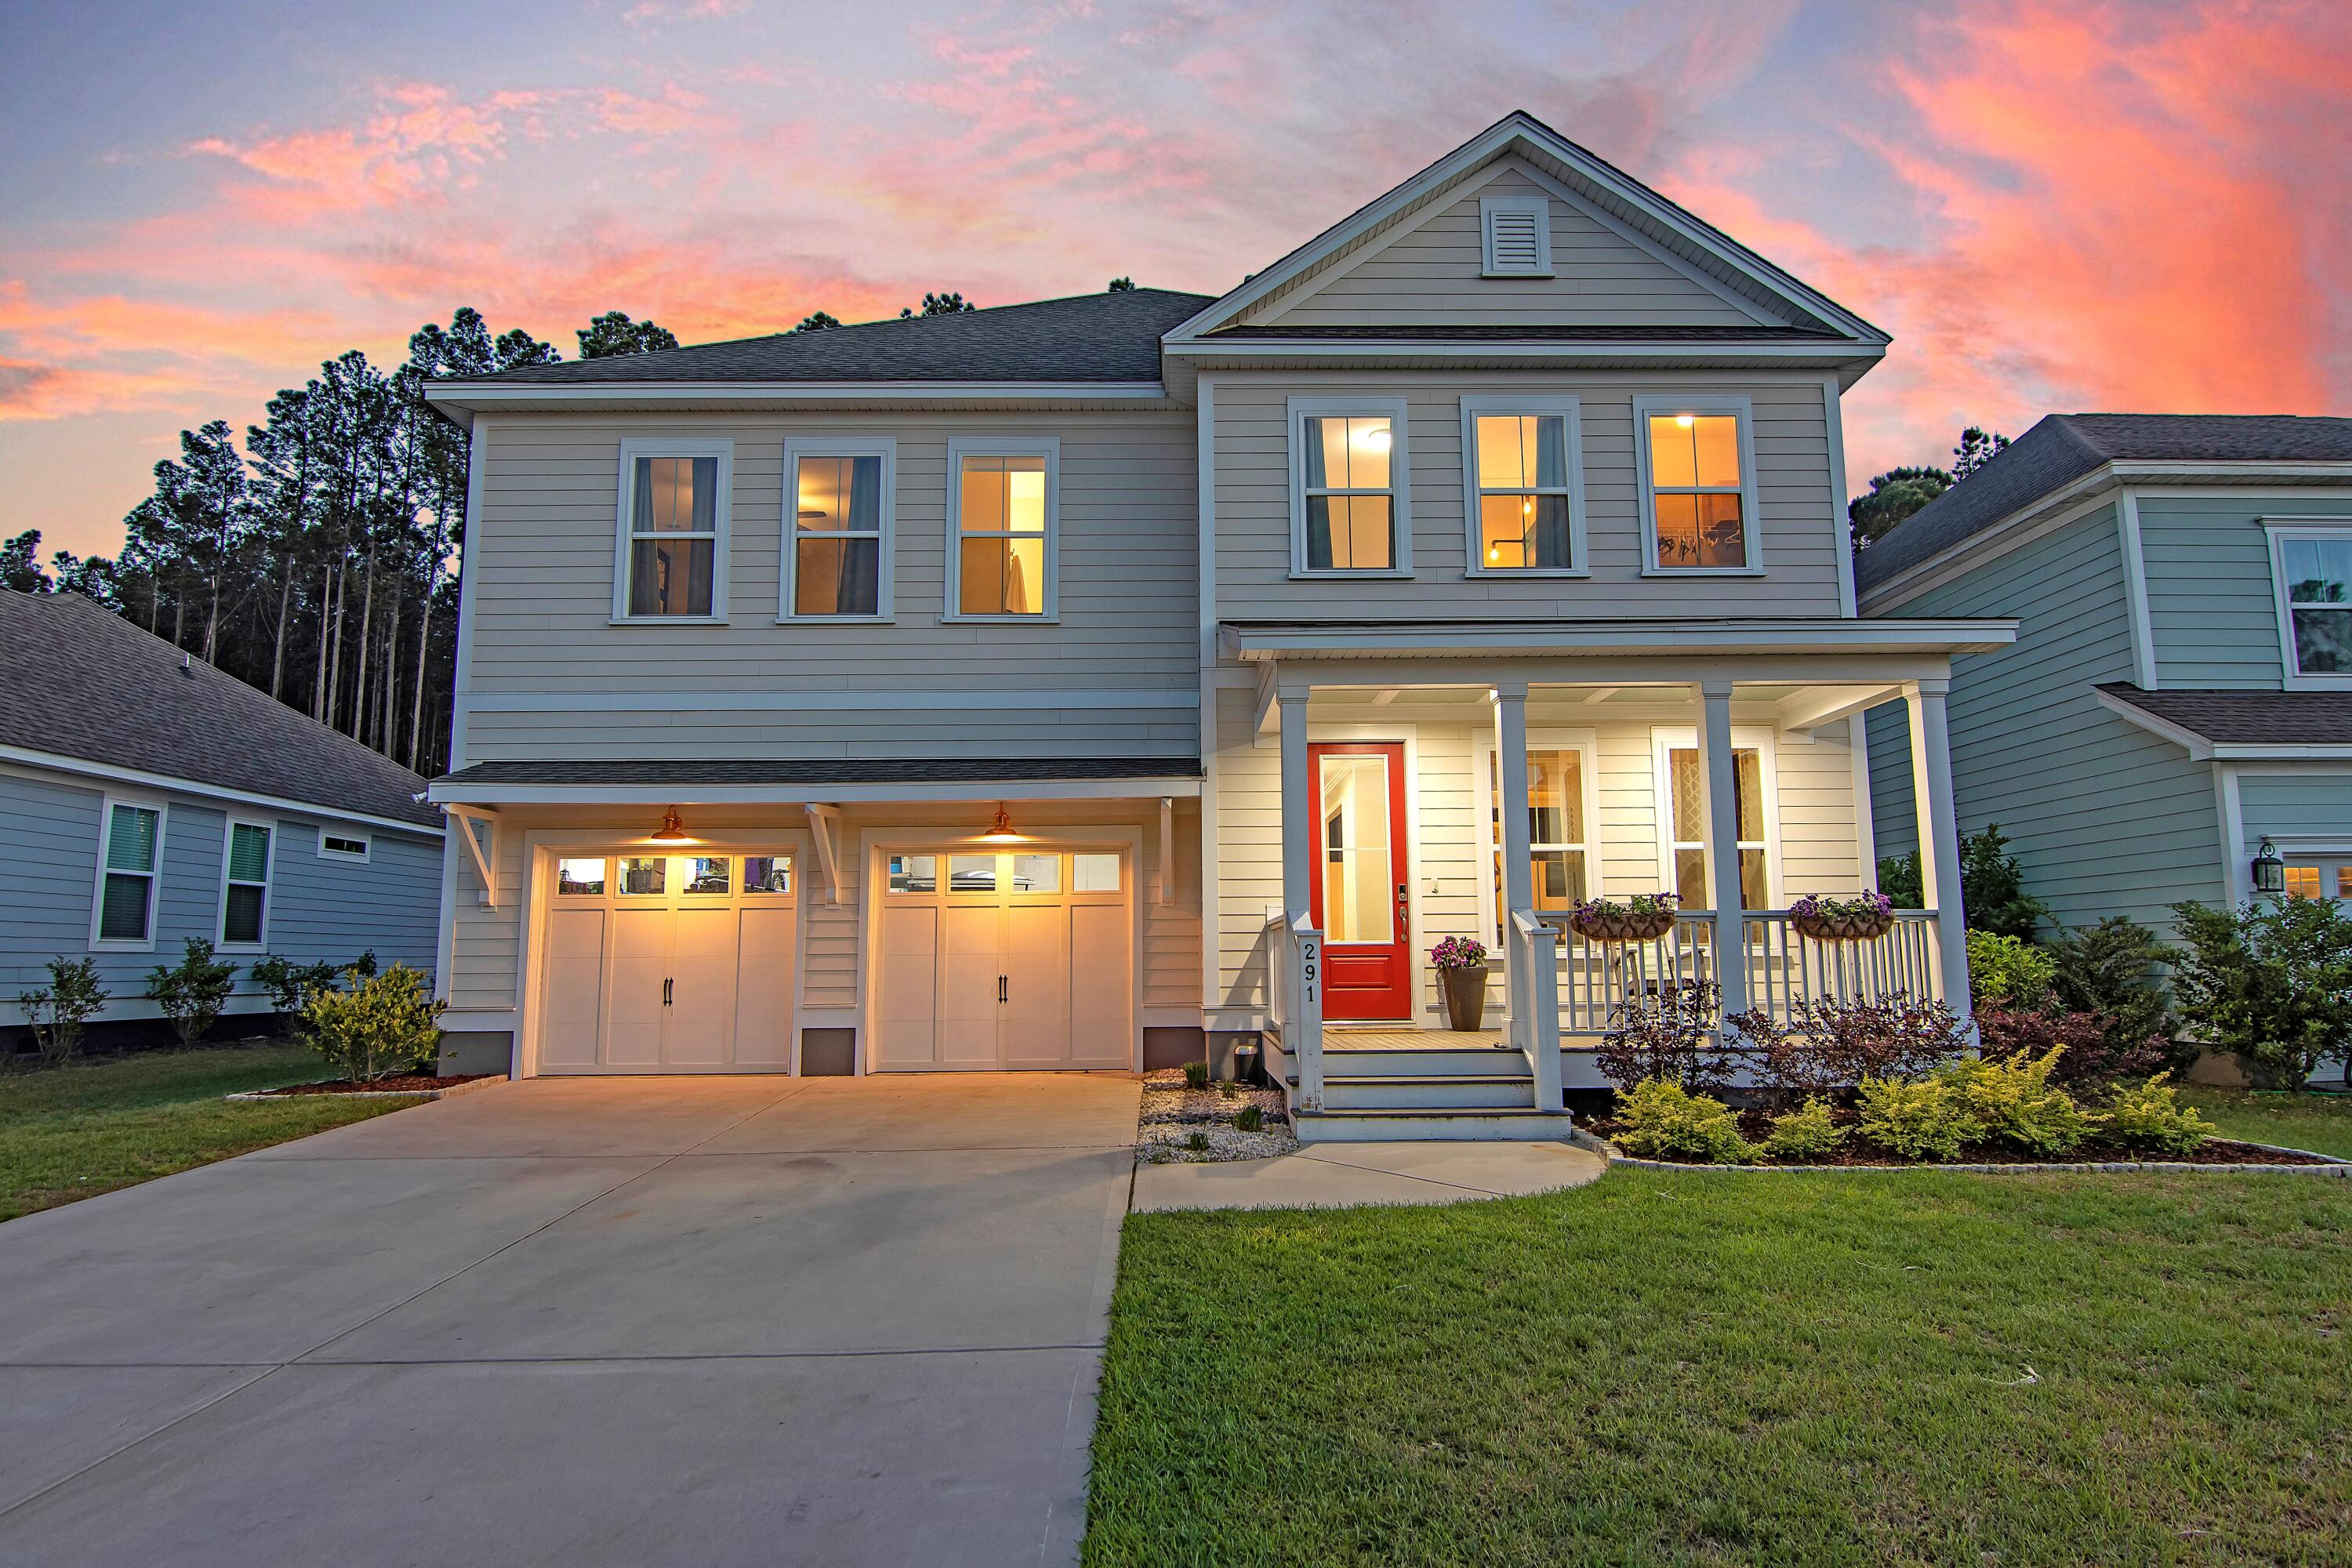 291 Calm Water Way, Summerville,  29486